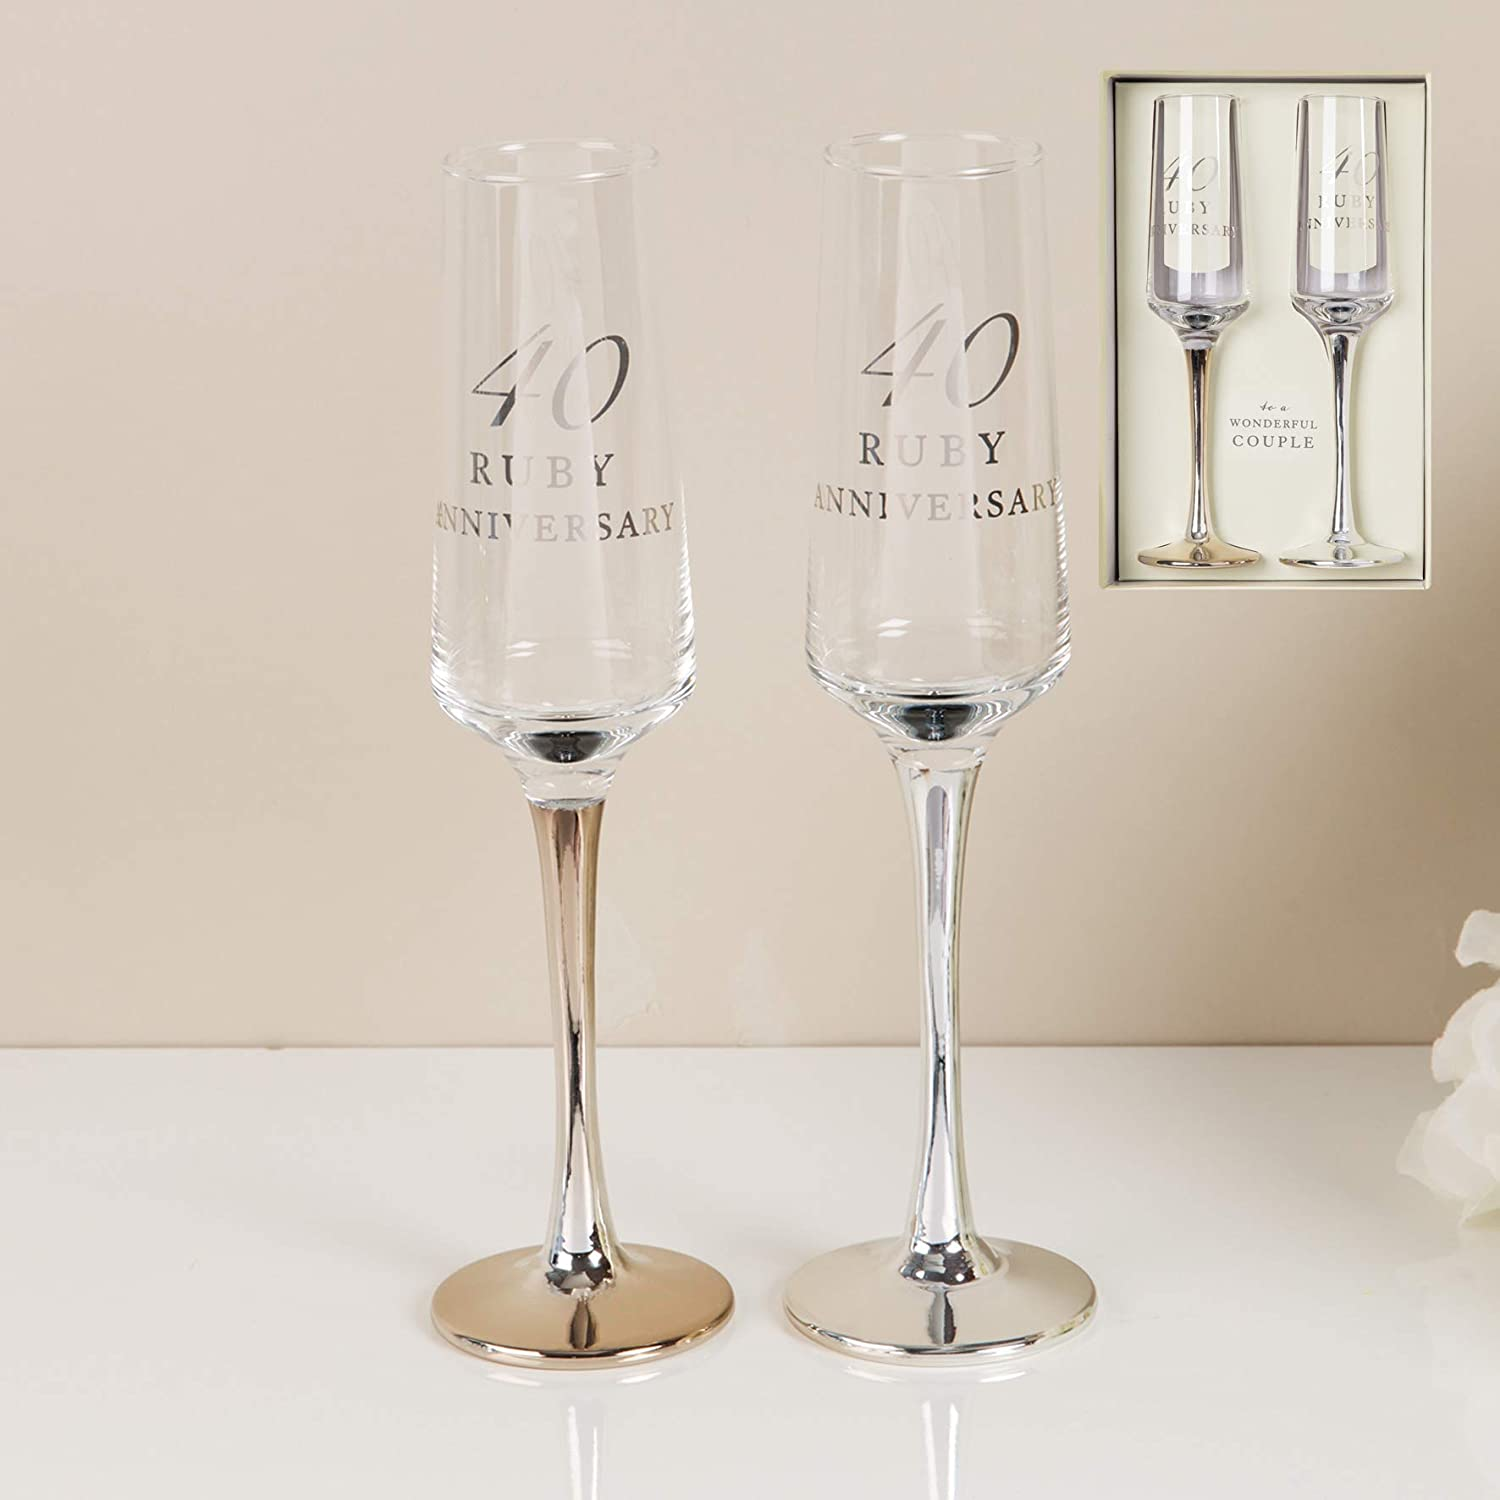 CC Personalised Amore Set of 2 Ruby 40th Wedding Anniversary Straight Champagne Flutes with silver stems - Add Your Own Message (Not Personalised)